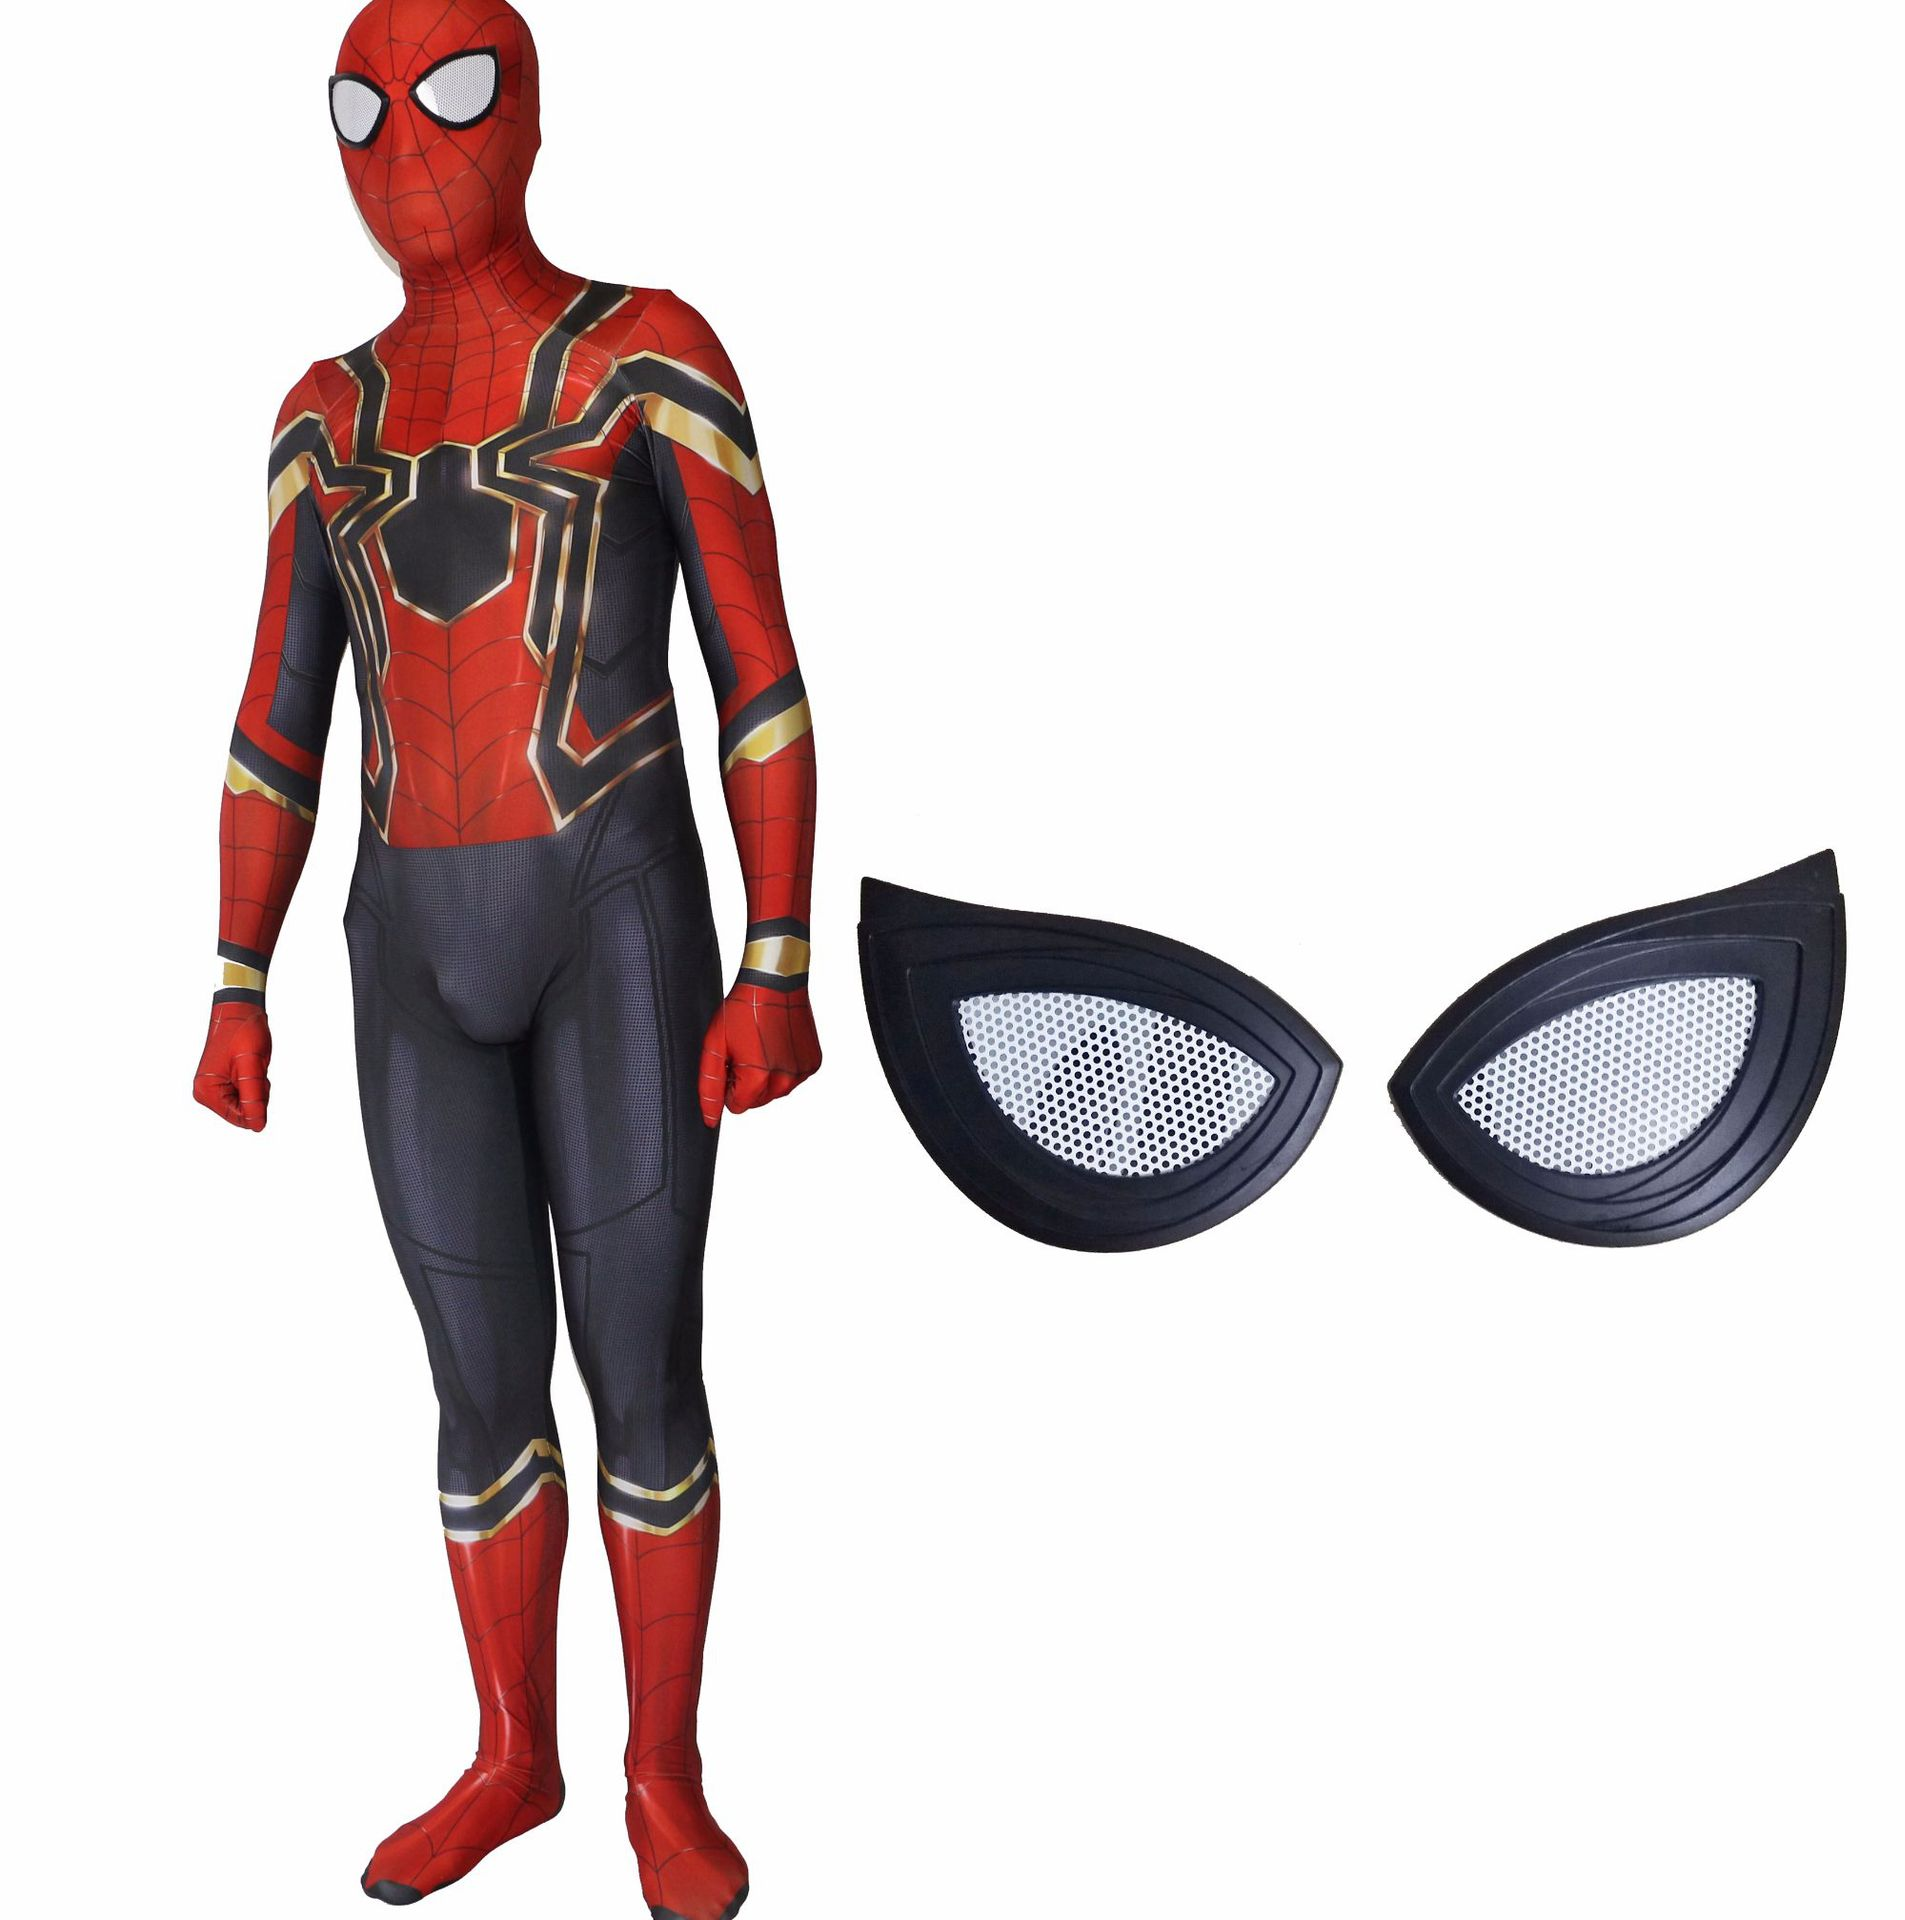 Adult Men Deluxe Spiderman Costume Homecoming Cosplay Amazing Superhero Fantasy Movie Fancy Dress